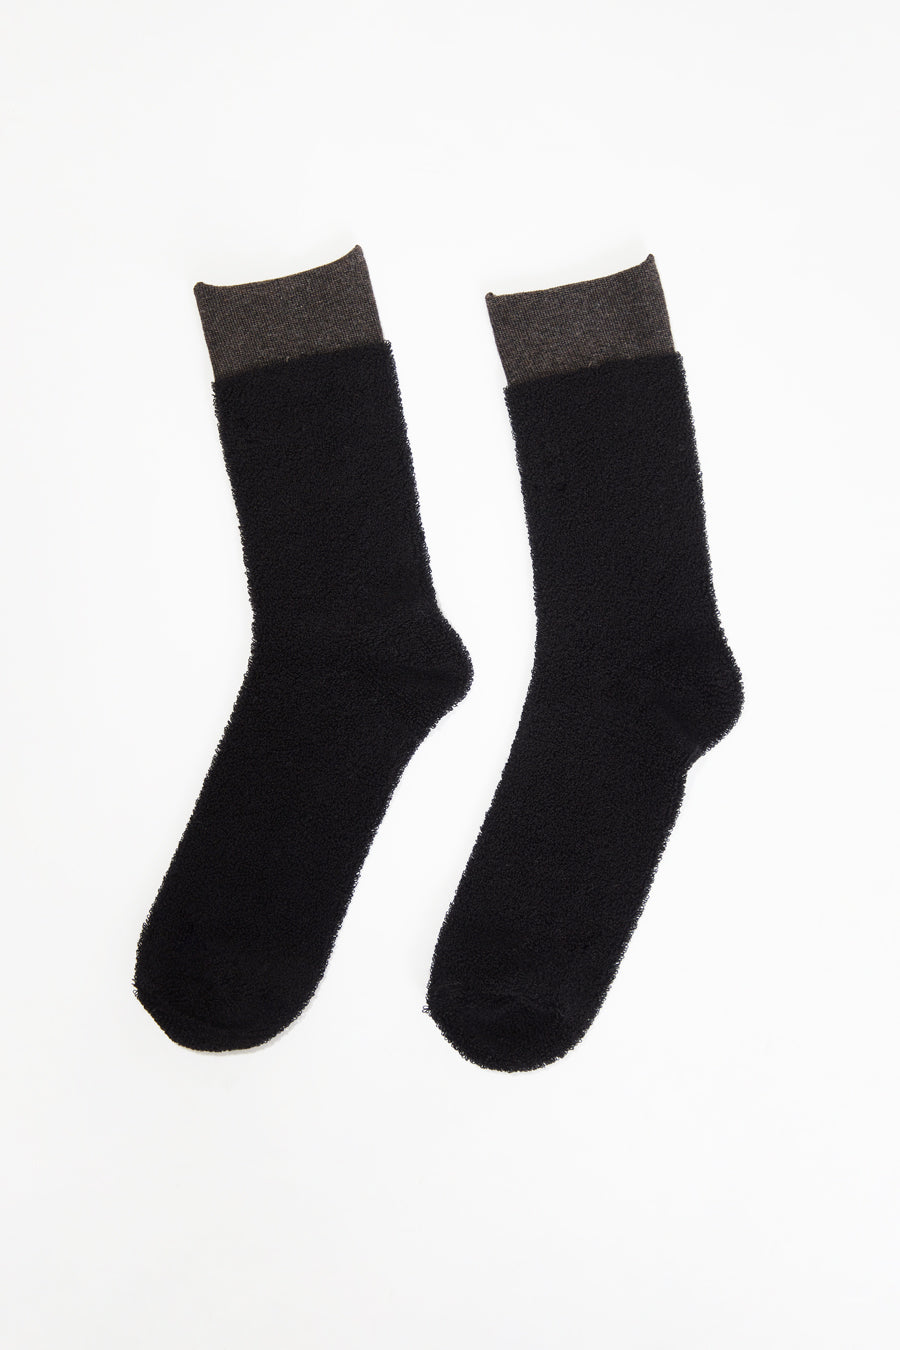 Maria La Rosa Sporty Sock in Black / Brown